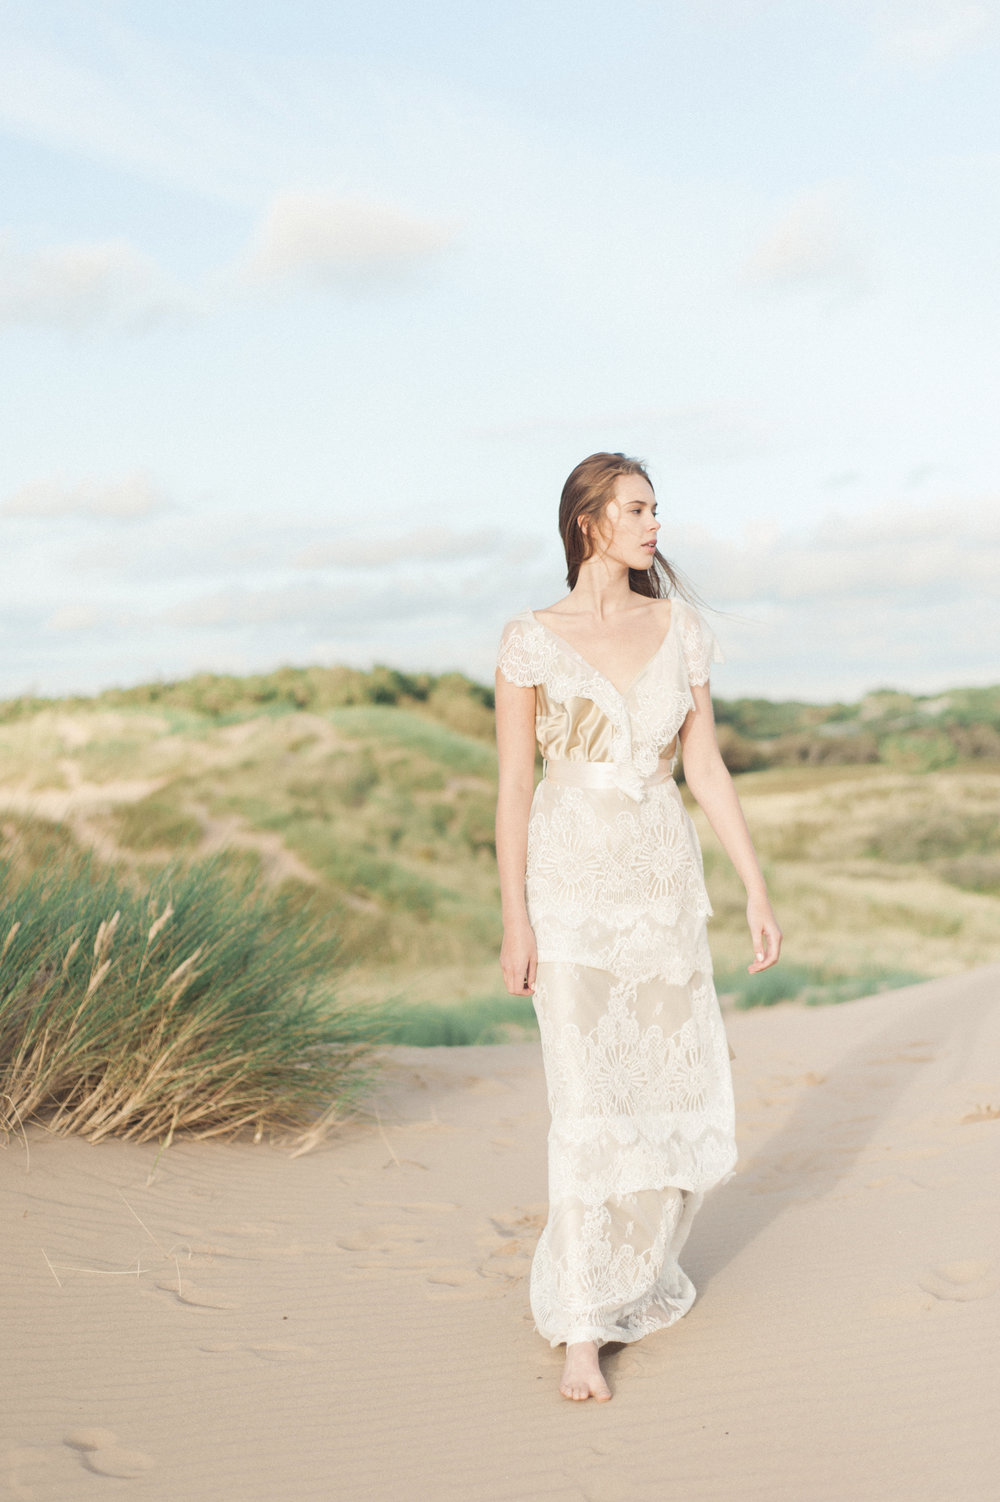 Kate-Beaumont-Wedding-Dresses-Formby-Beach-Emma-Pilkington-23.jpg